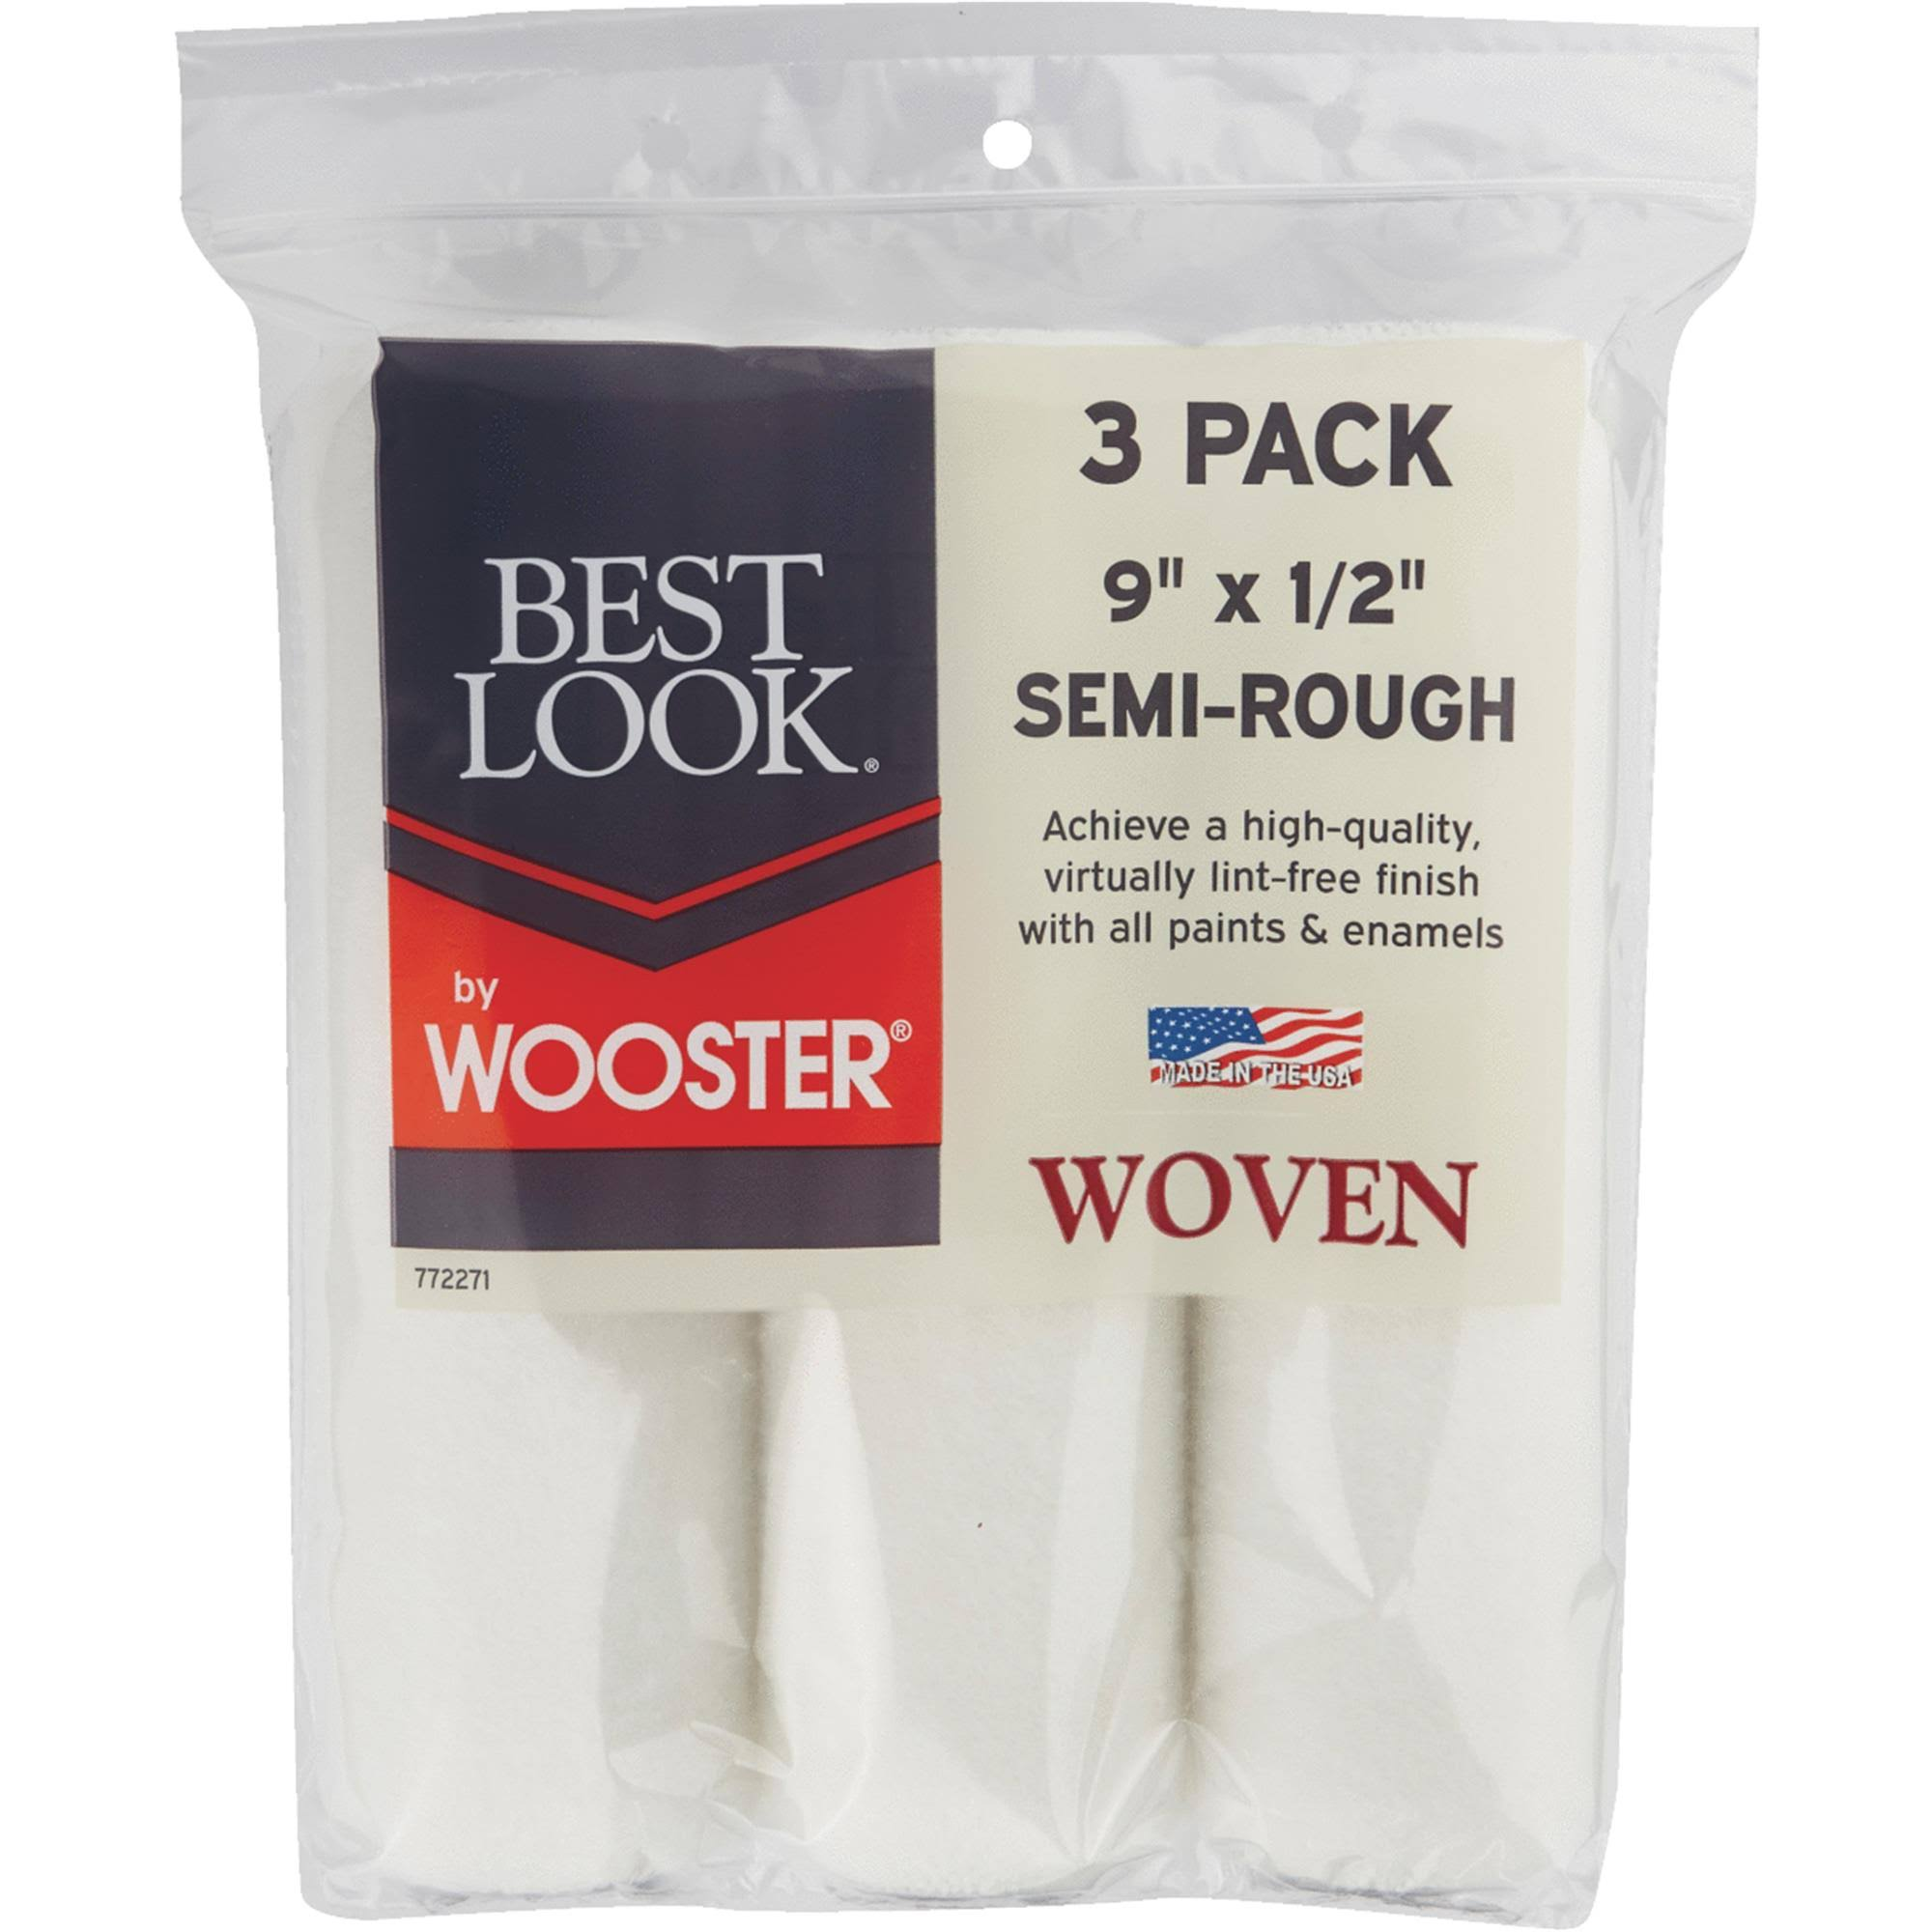 Wooster Brush 3 Pack 9x1/2 Woven Cover DR464-9